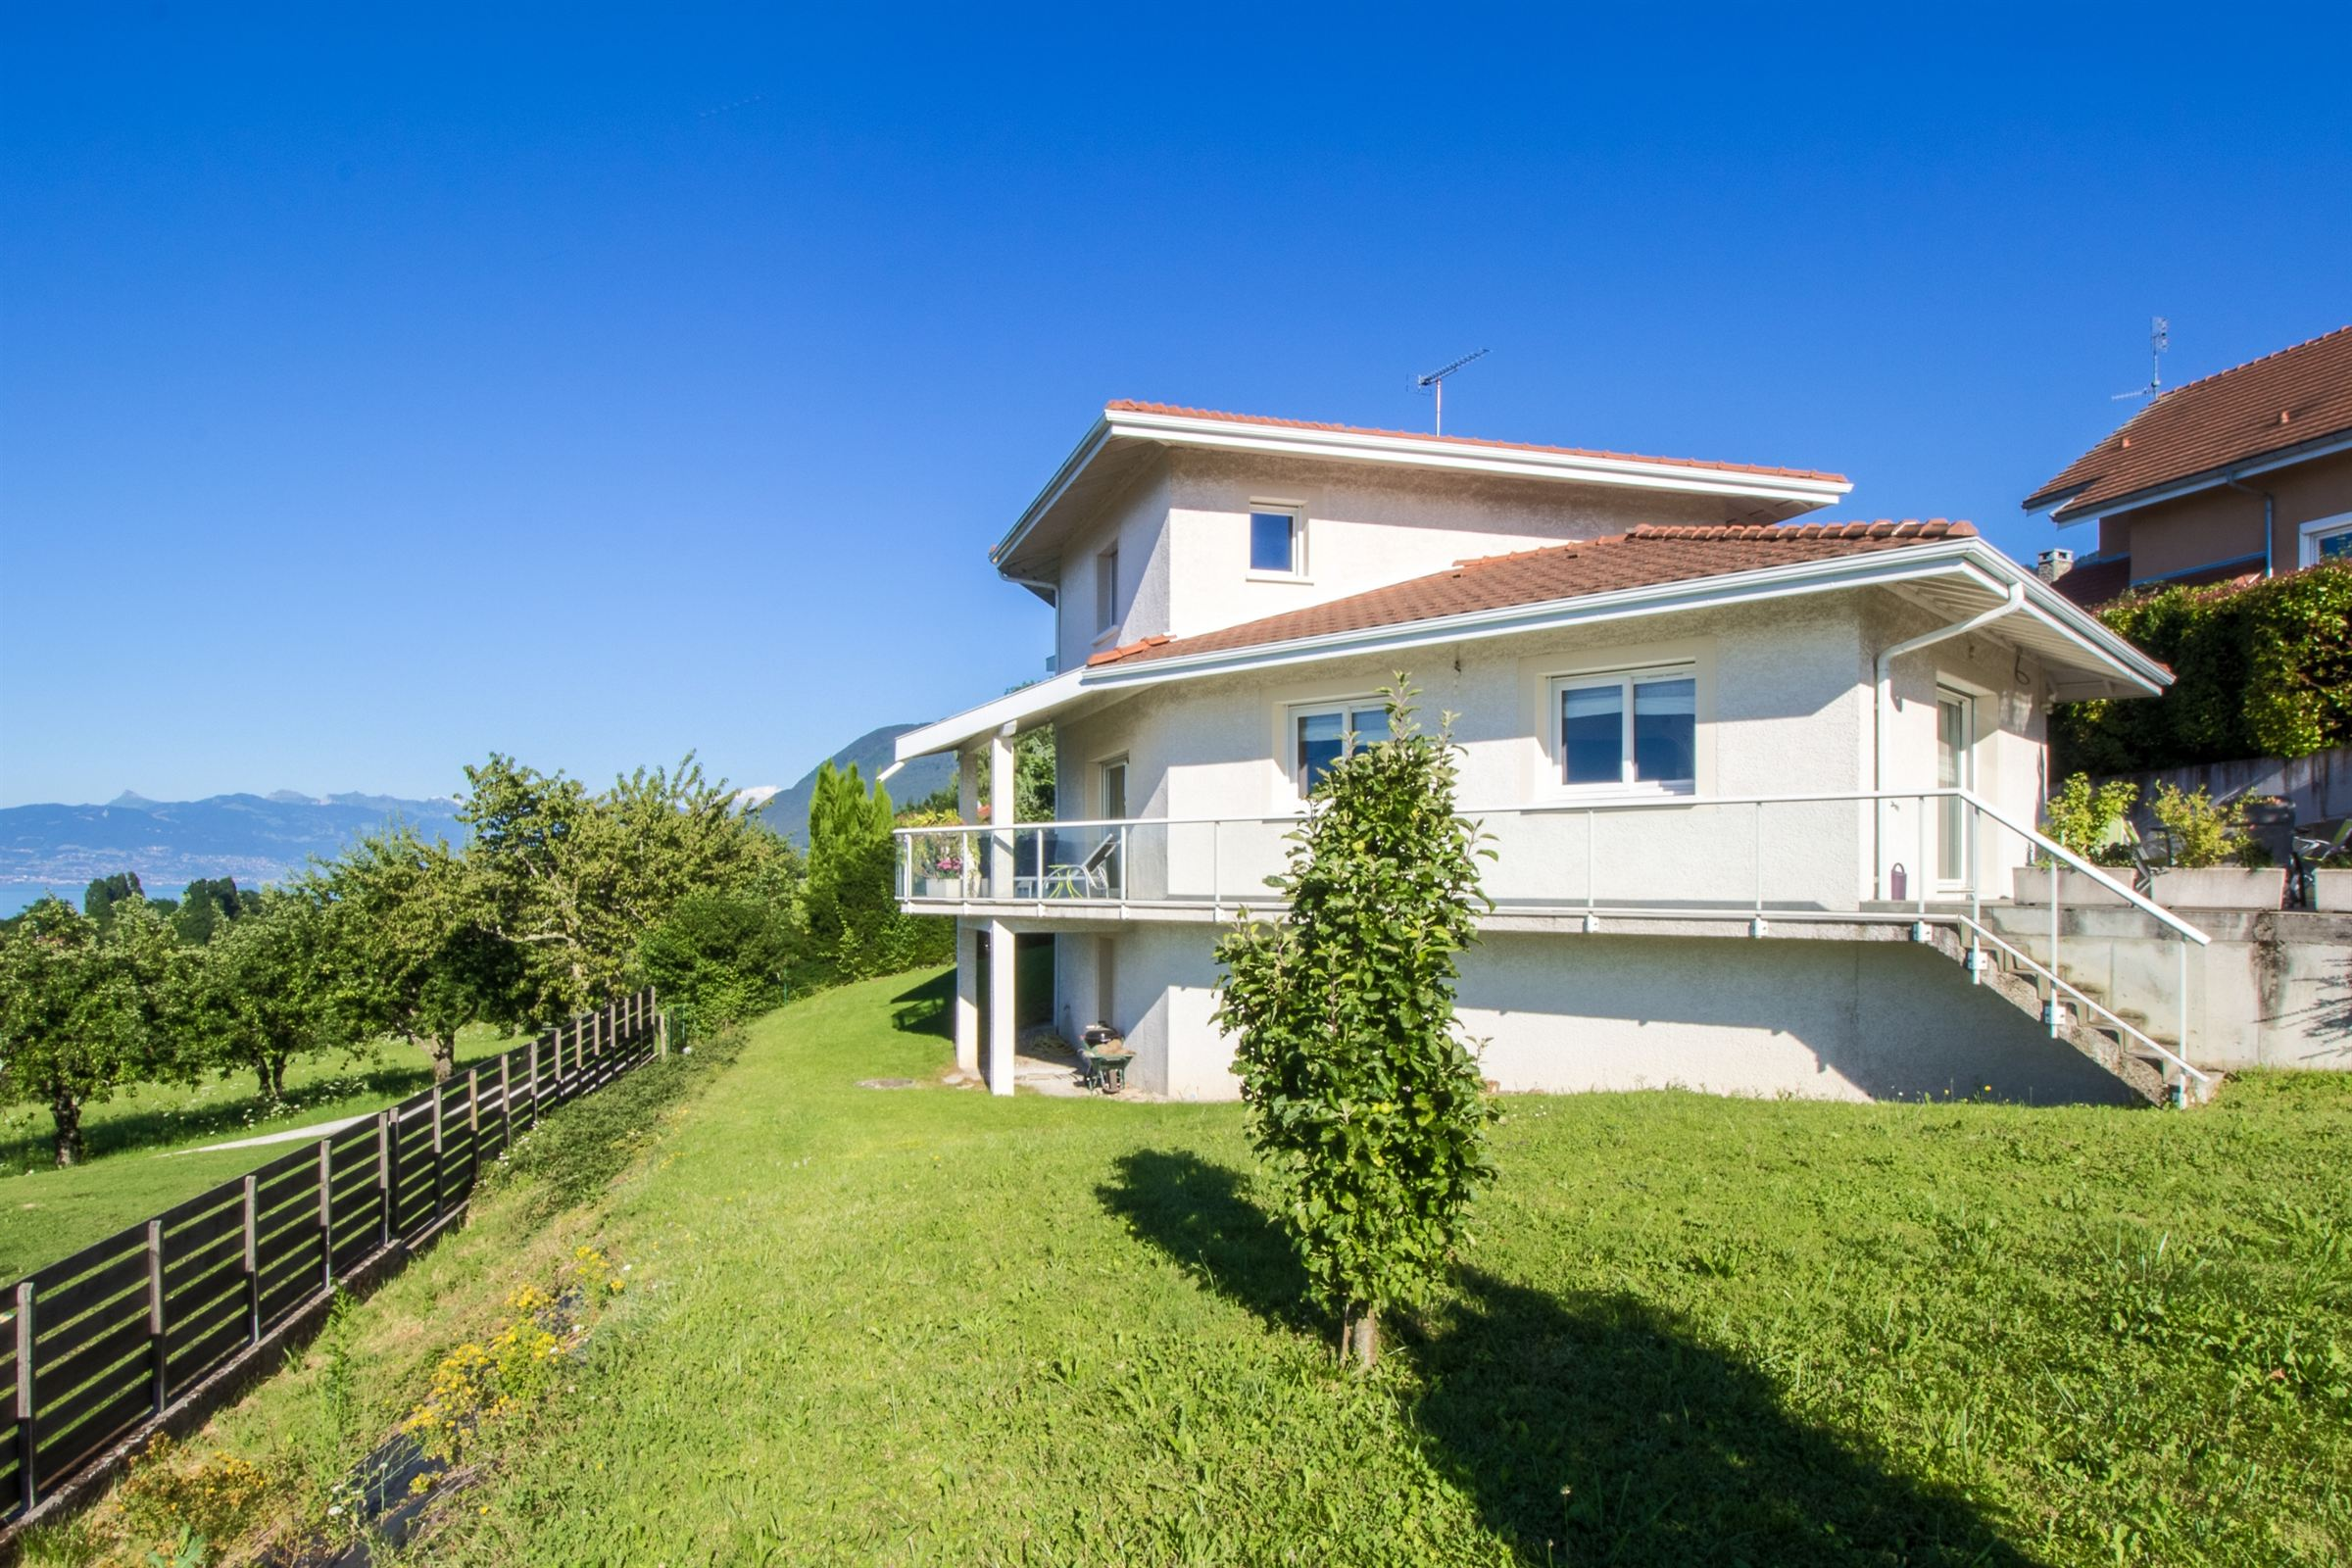 Single Family Home for Sale at VUE LAC PANORAMIQUE Lugrin, Rhone-Alpes, 74500 France